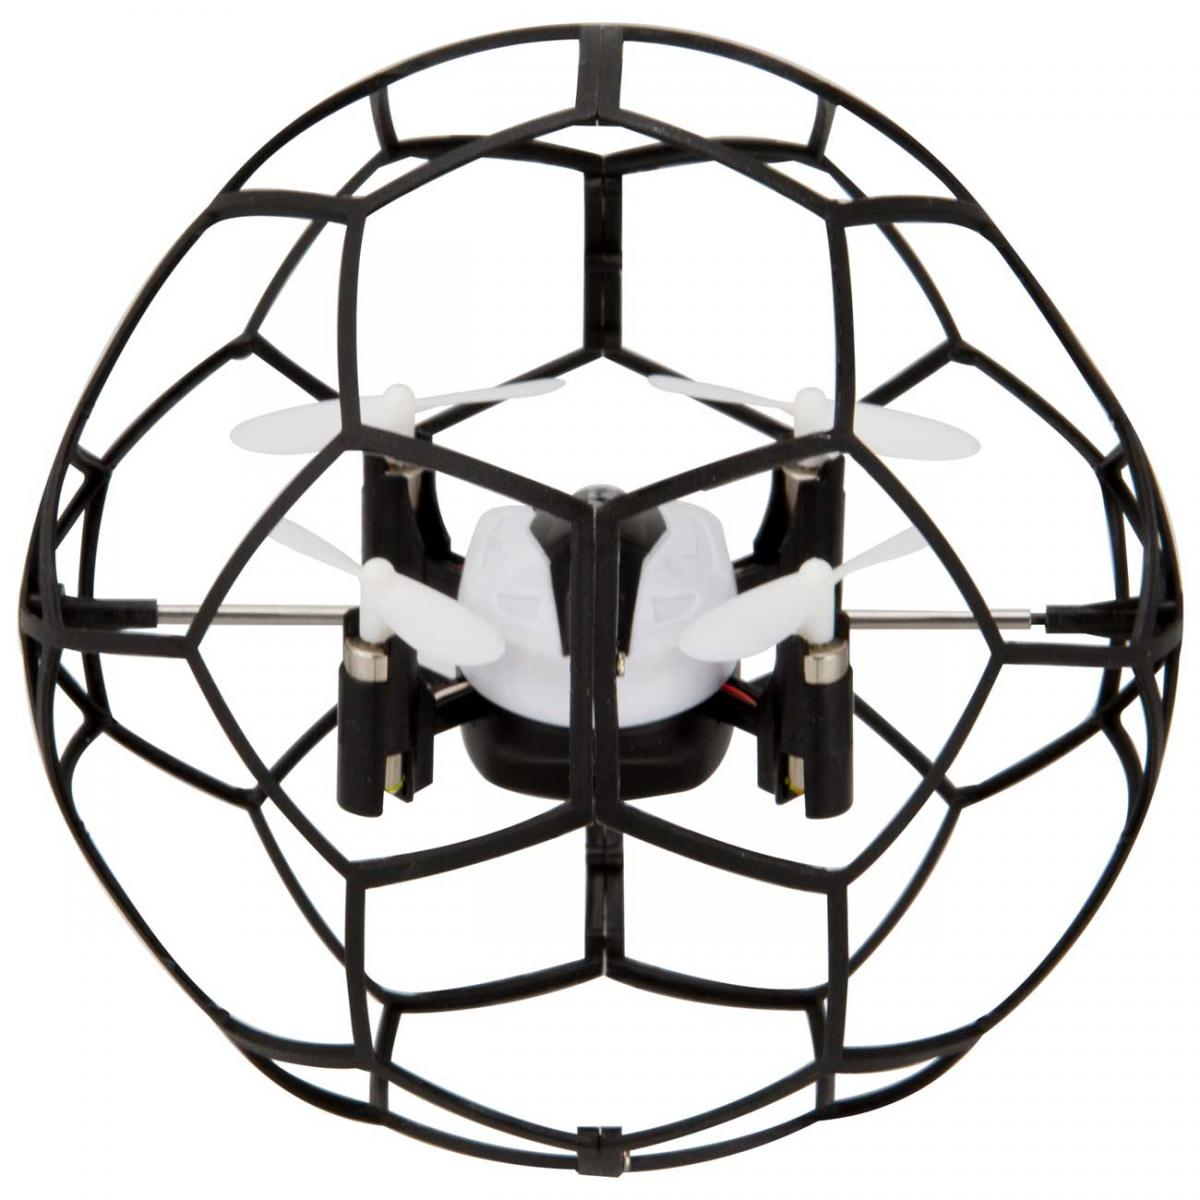 Sky Rider Hummingbird Mini Drone with Cage